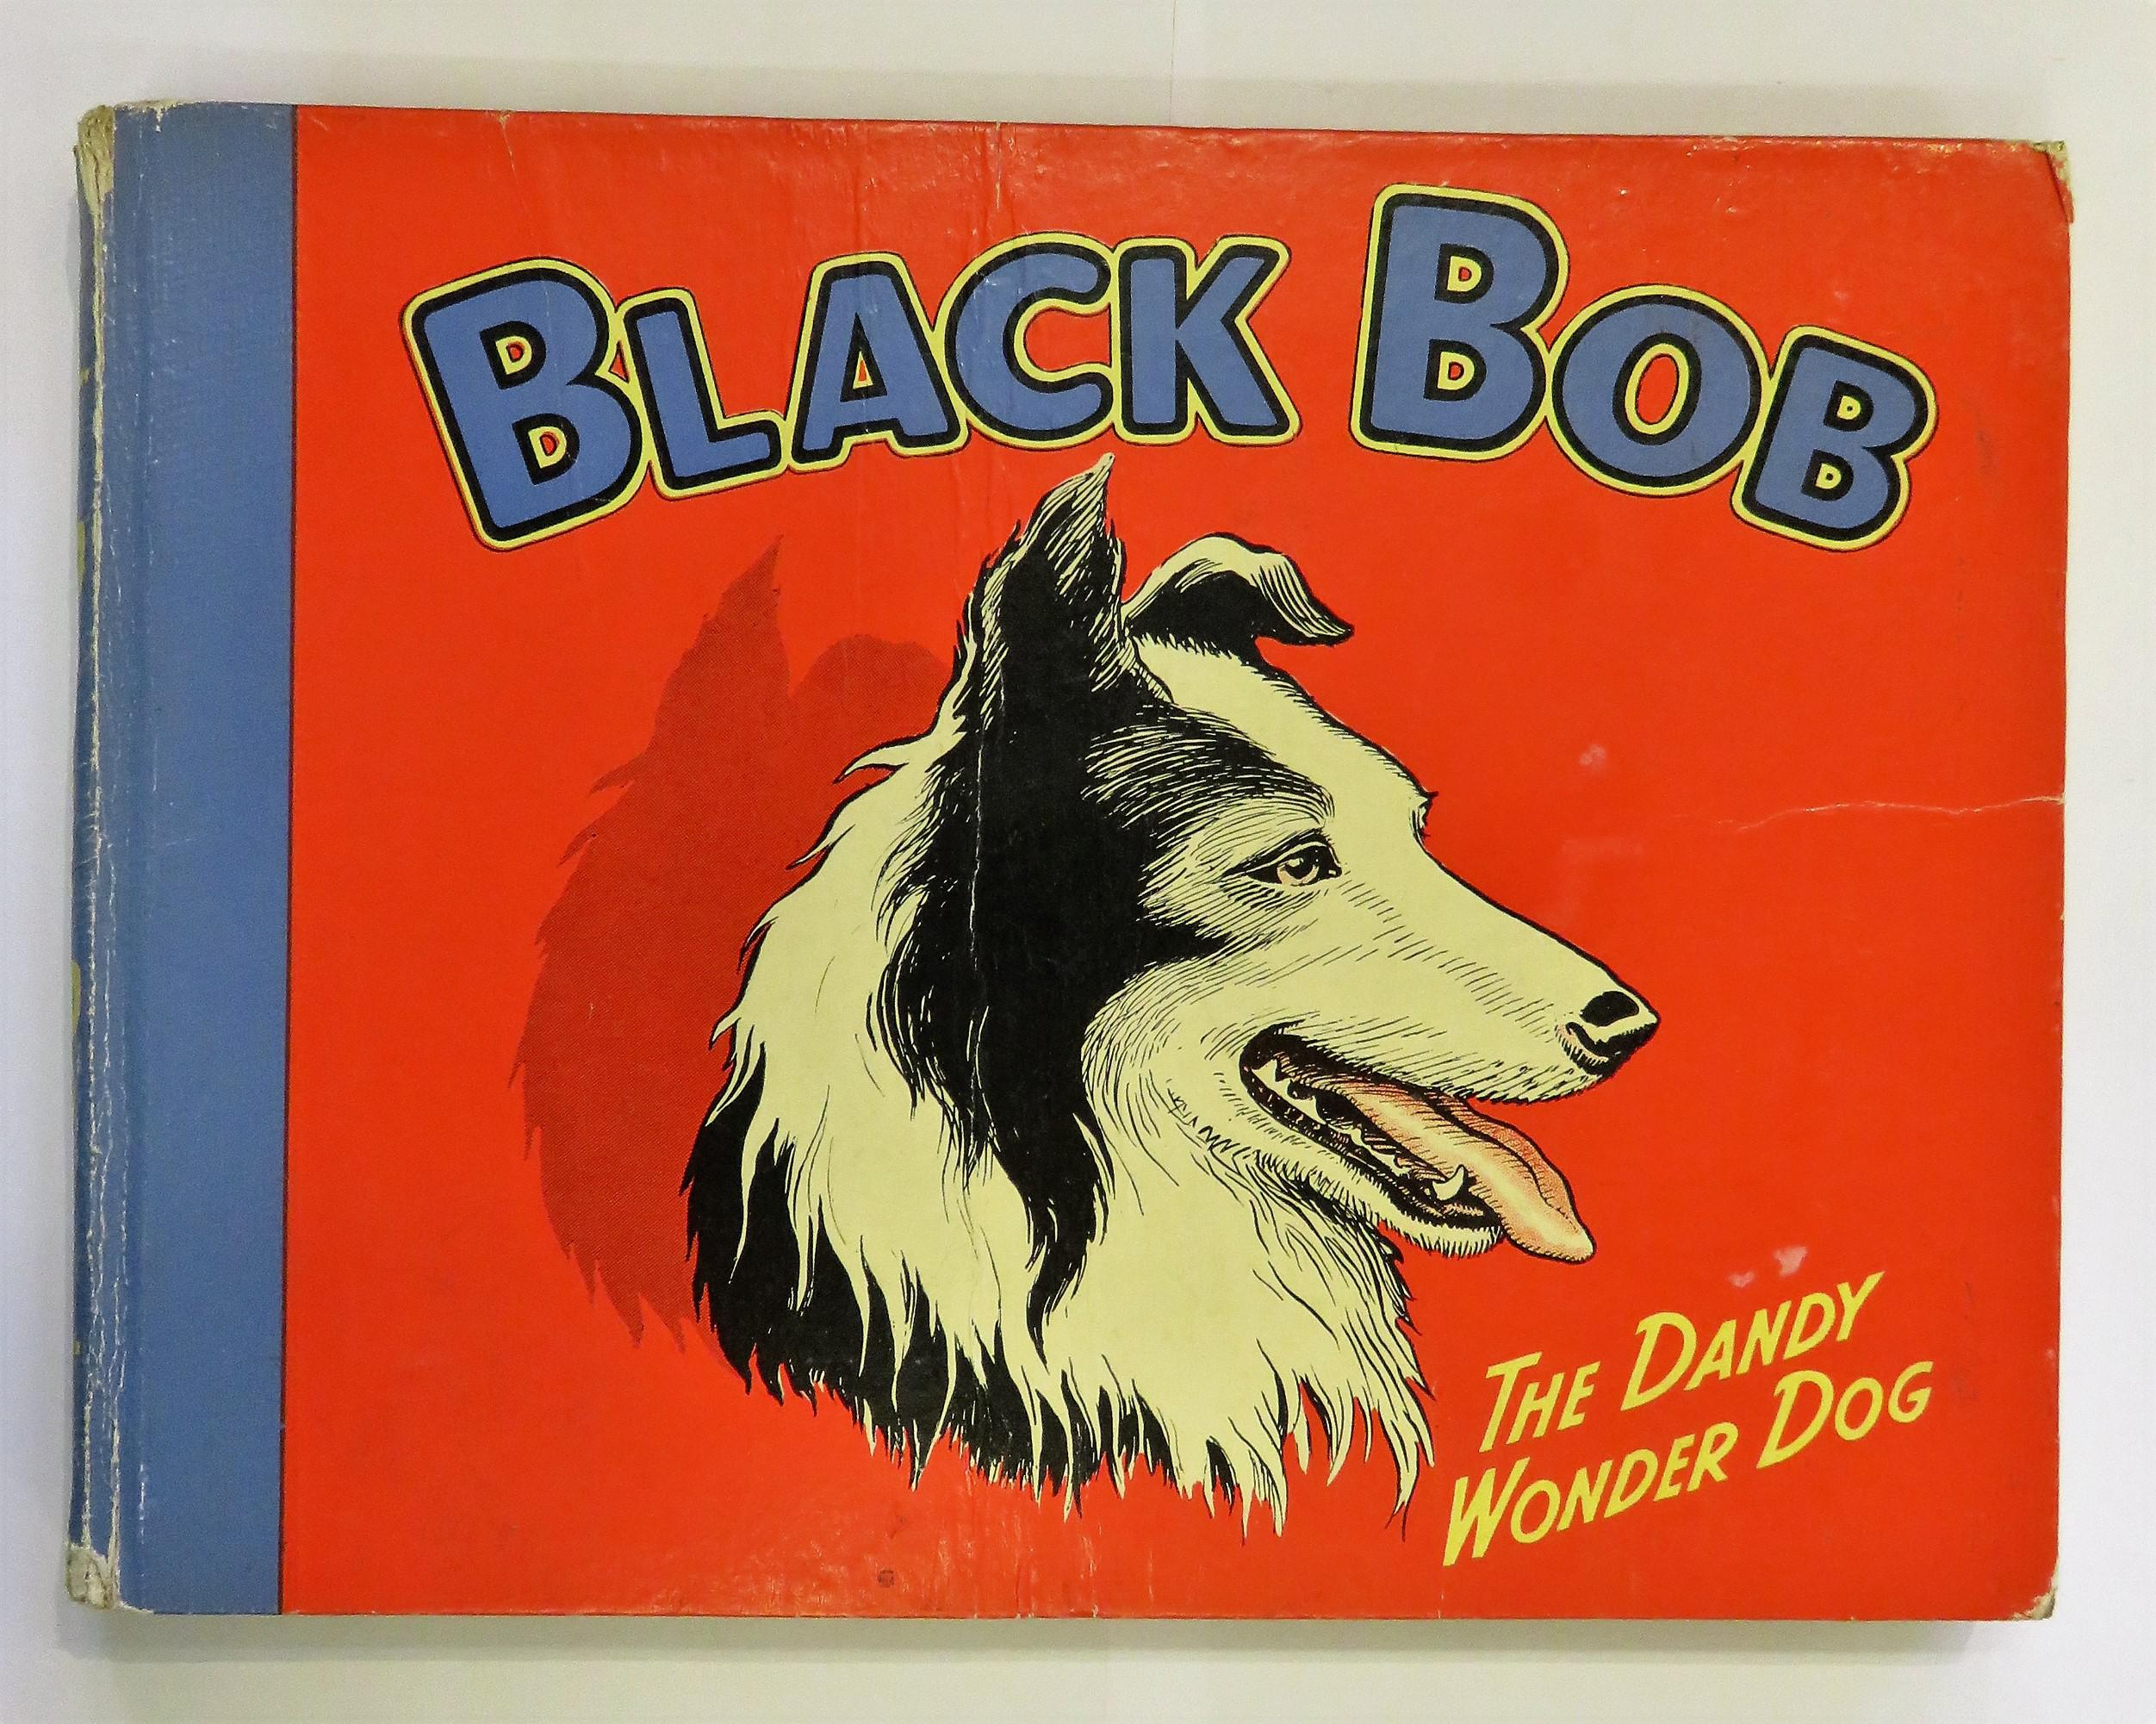 Black Bob The Dandy Wonder Dog